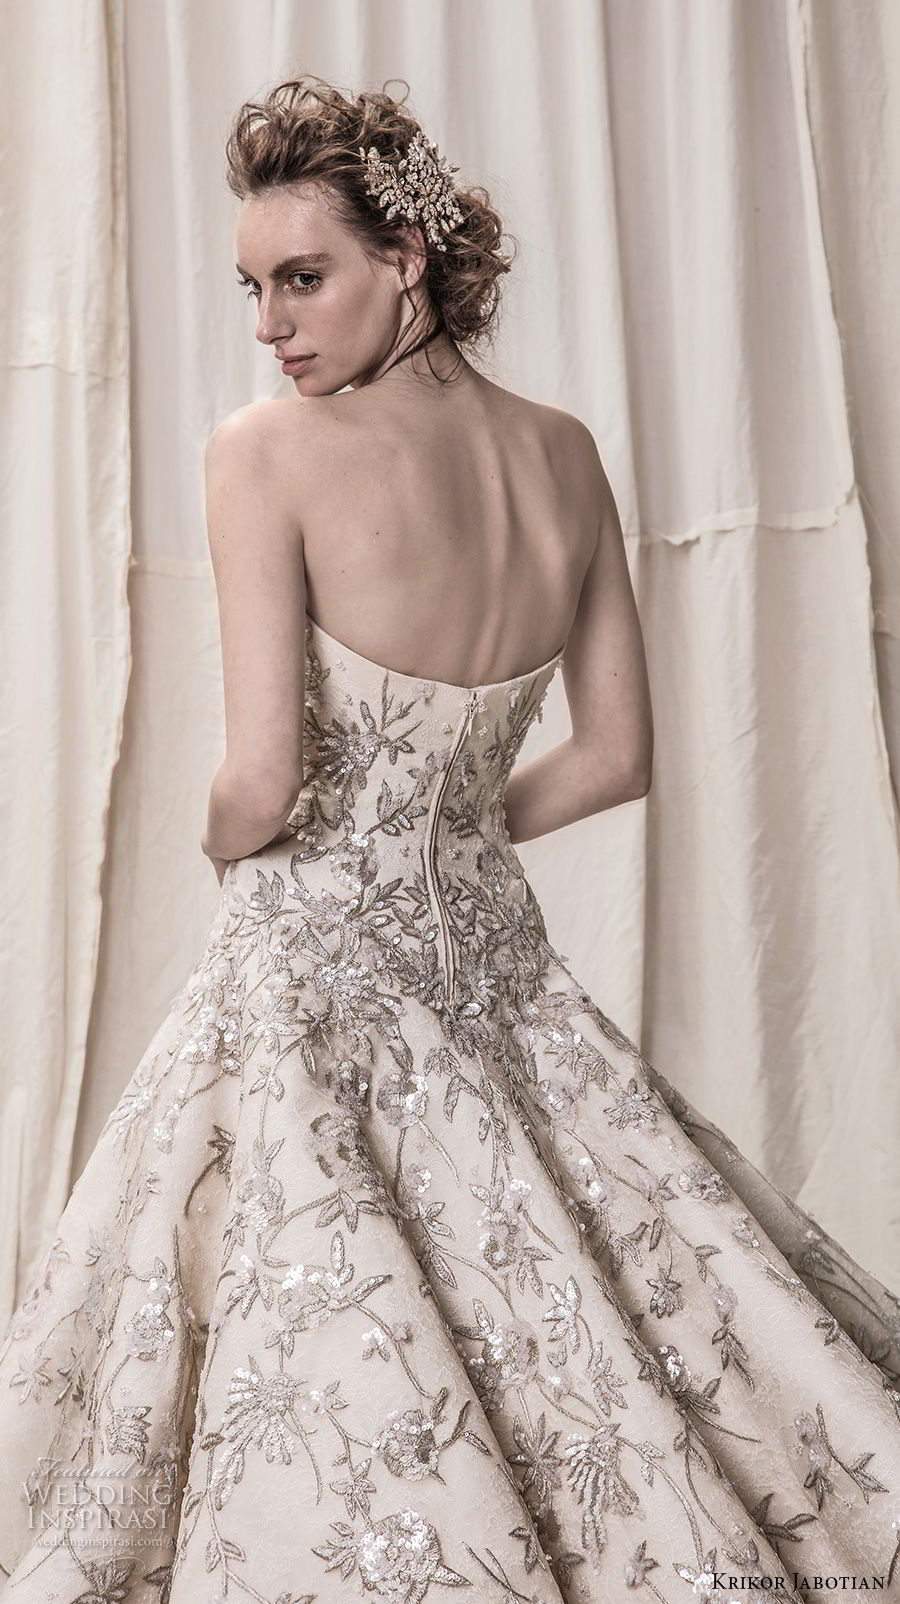 krikor jabotian spring 2018 bridal strapless straight across neckline full embellishment champagne color princess ball gown a line wedding dress royal train (07) zbv